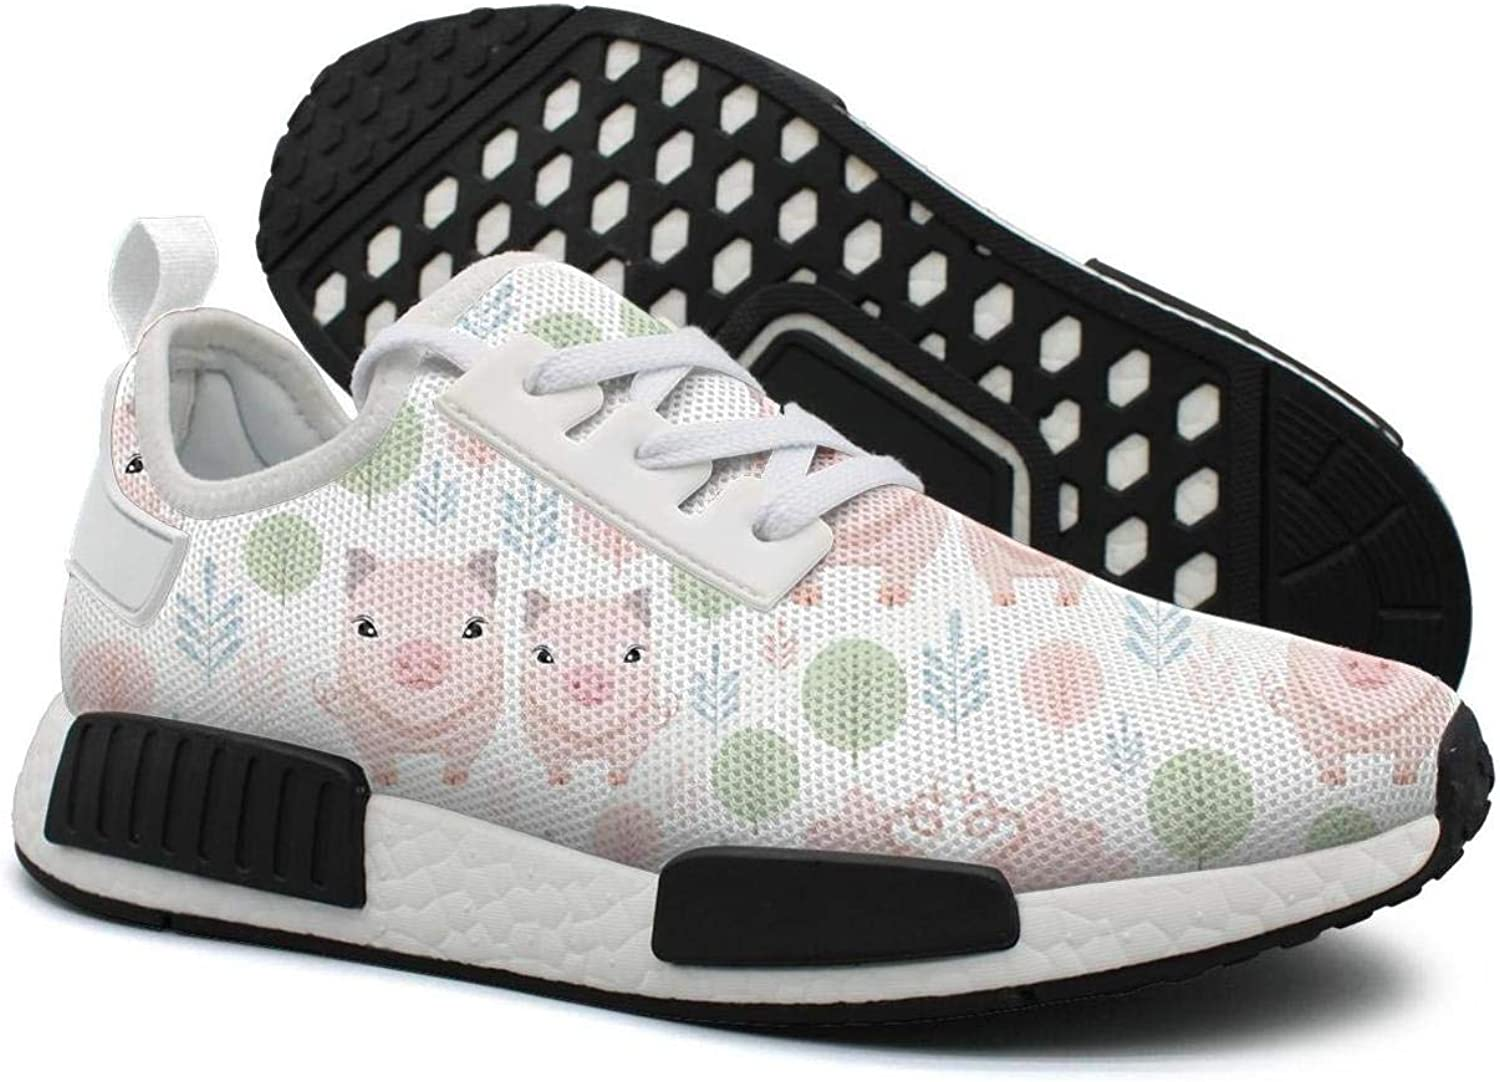 Cute Pink Pig Mom with Babe Pig Women's Unique Lightweight Volleyball Sneakers Gym Outdoor Sports shoes